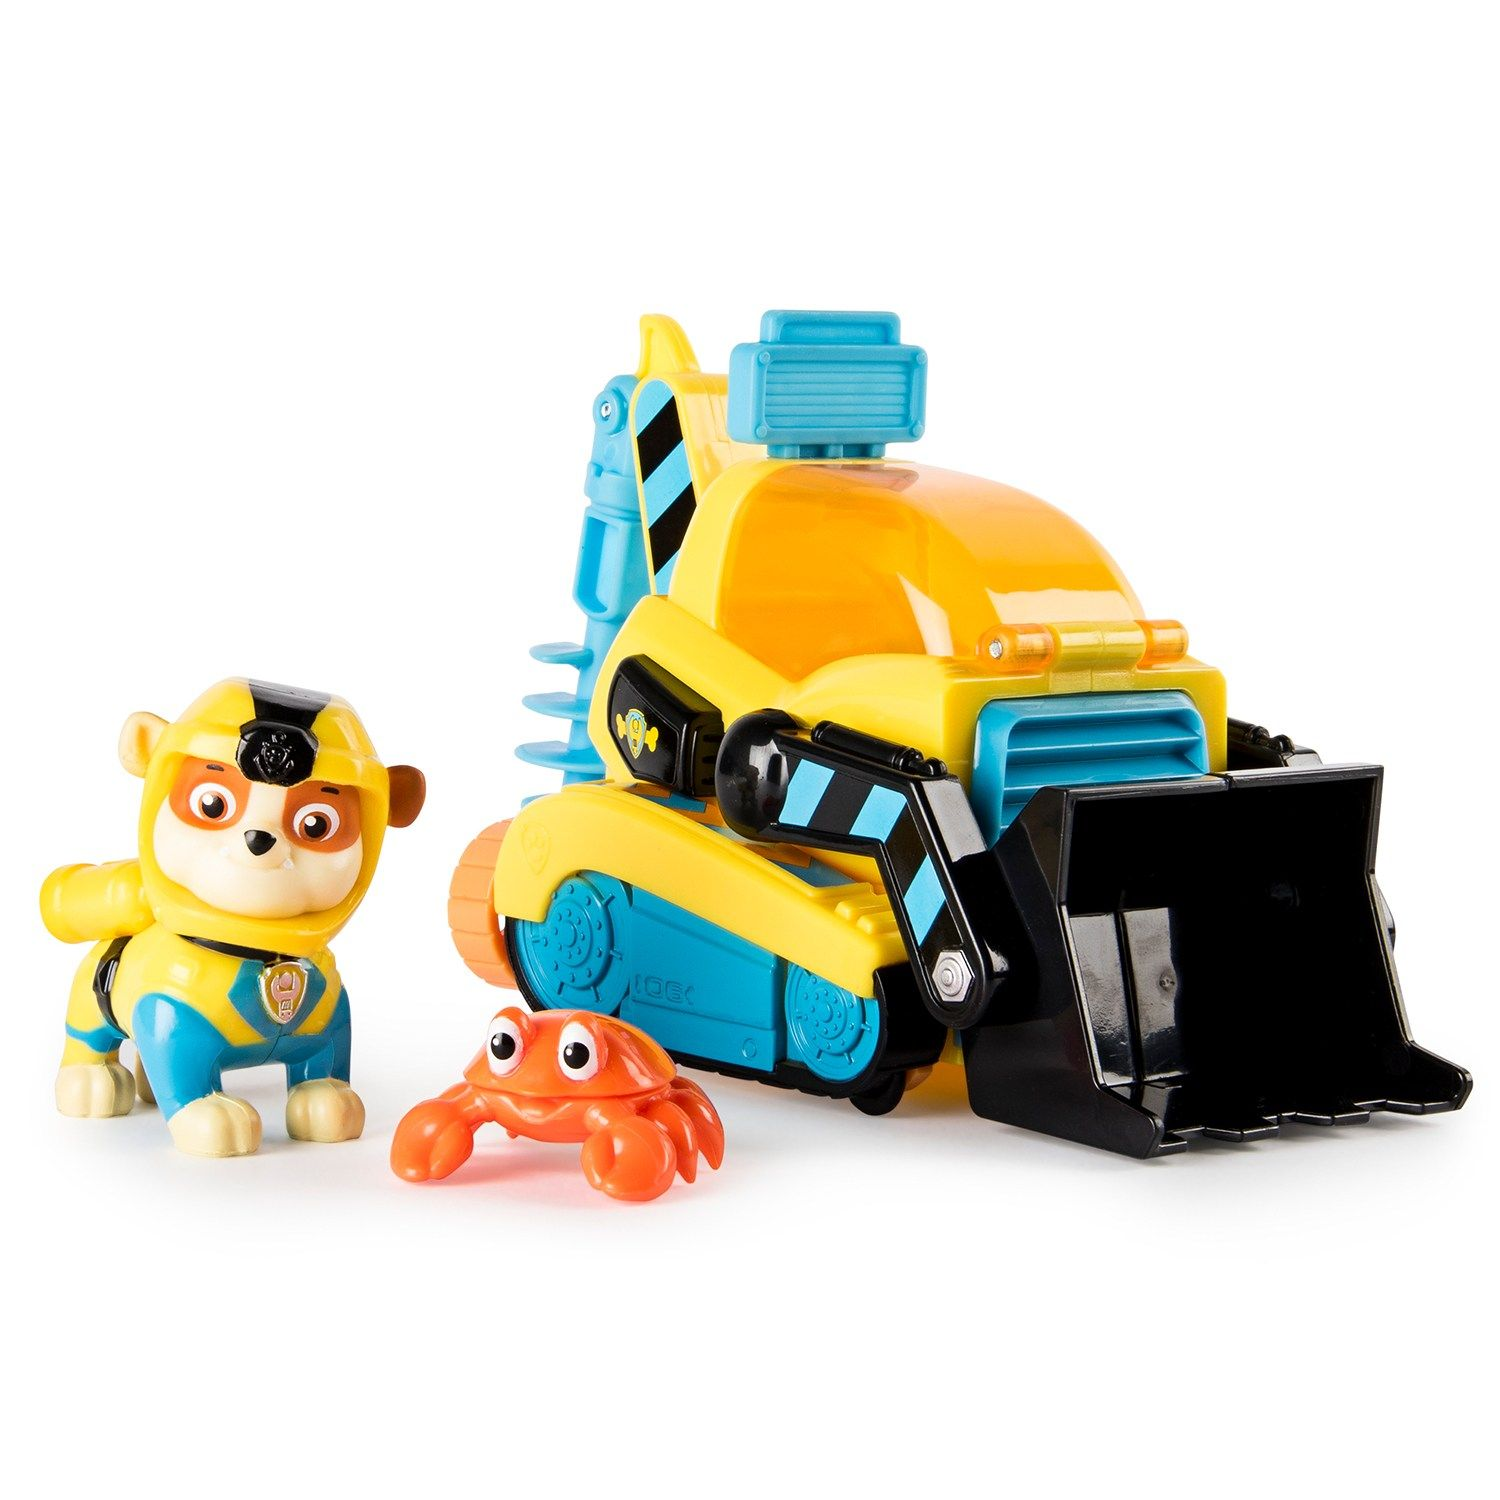 Quatang Gallery- Paw Patrol Rubble S Transforming Sea Patrol Vehicle By Spinmaster With Images Paw Patrol Toys Rubble Paw Patrol Paw Patrol